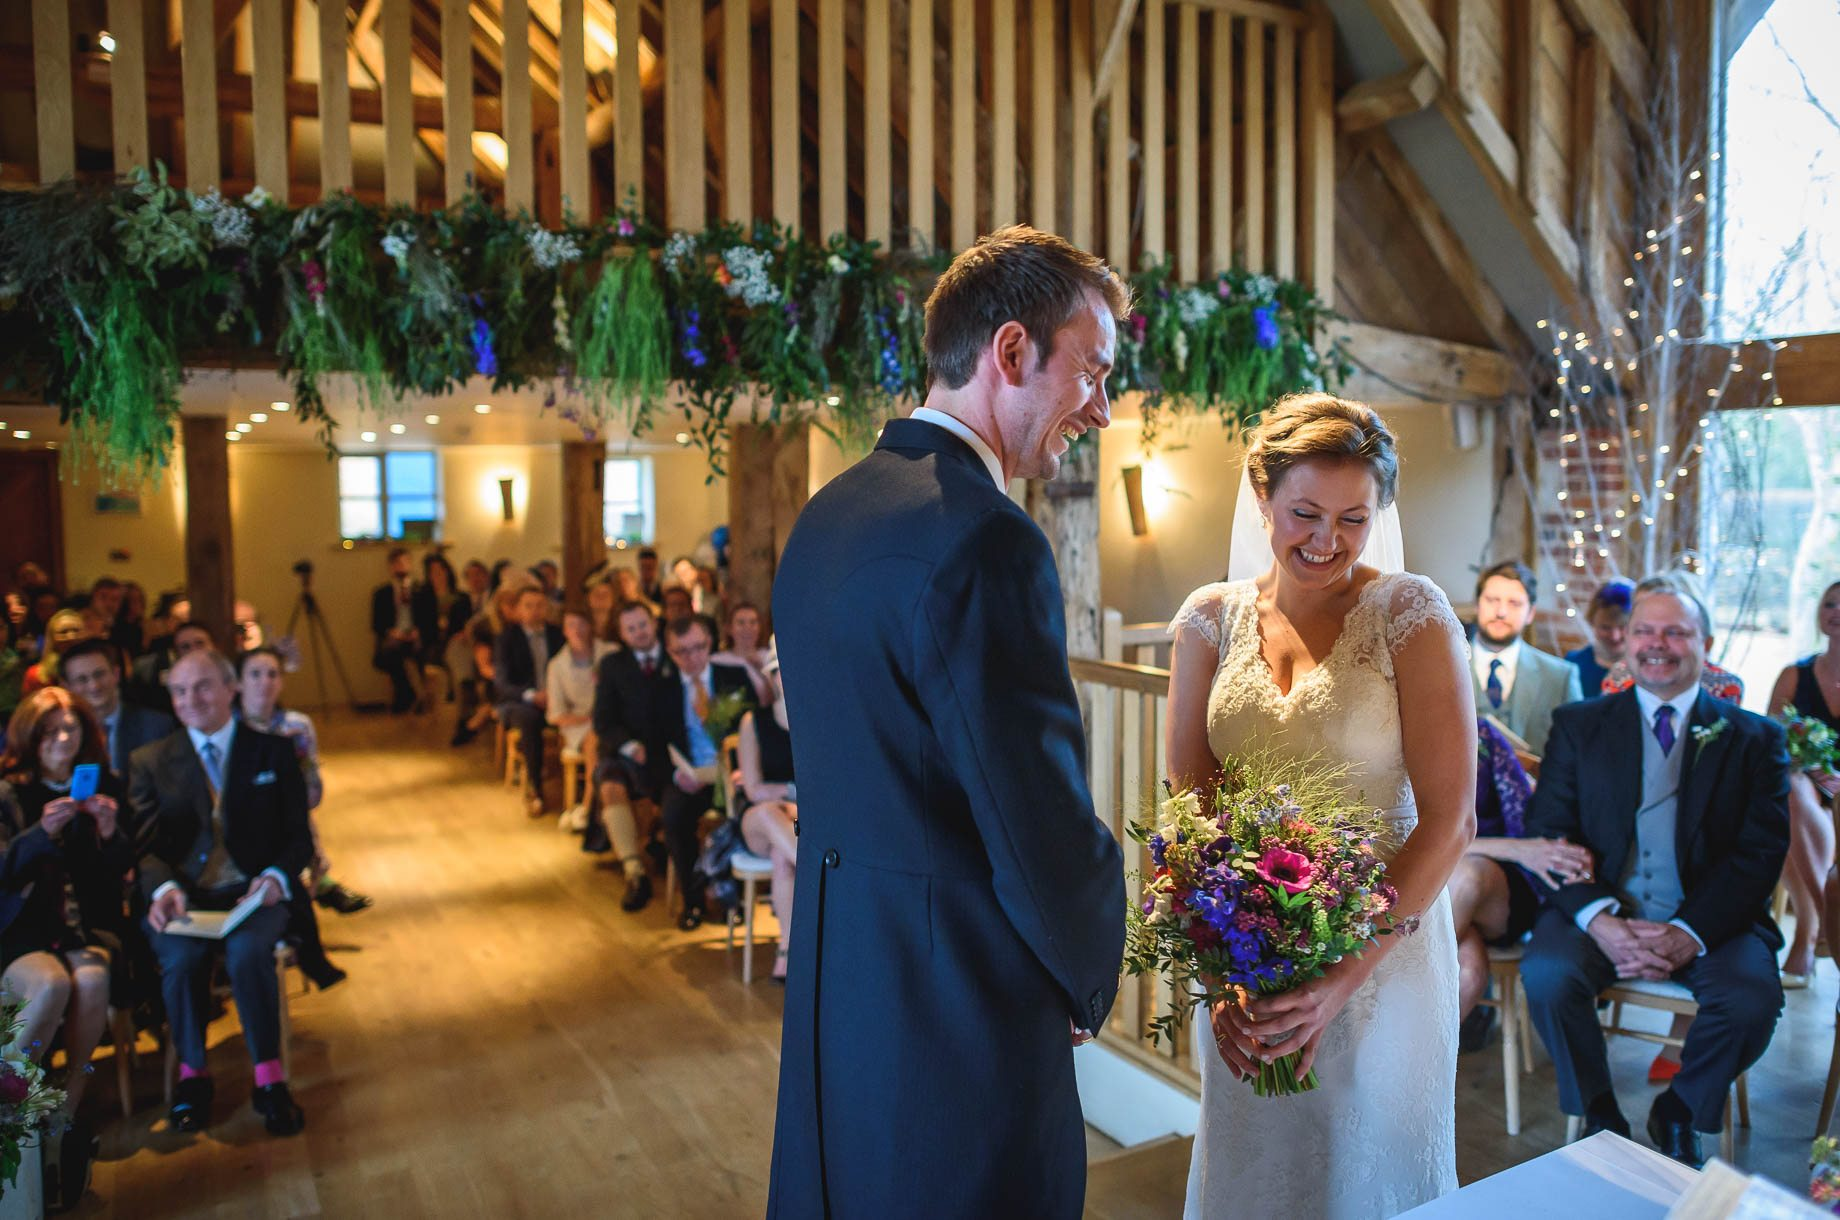 Bury Court Barn wedding photography - Ashley and Henry by Guy Collier Photography (47 of 188)